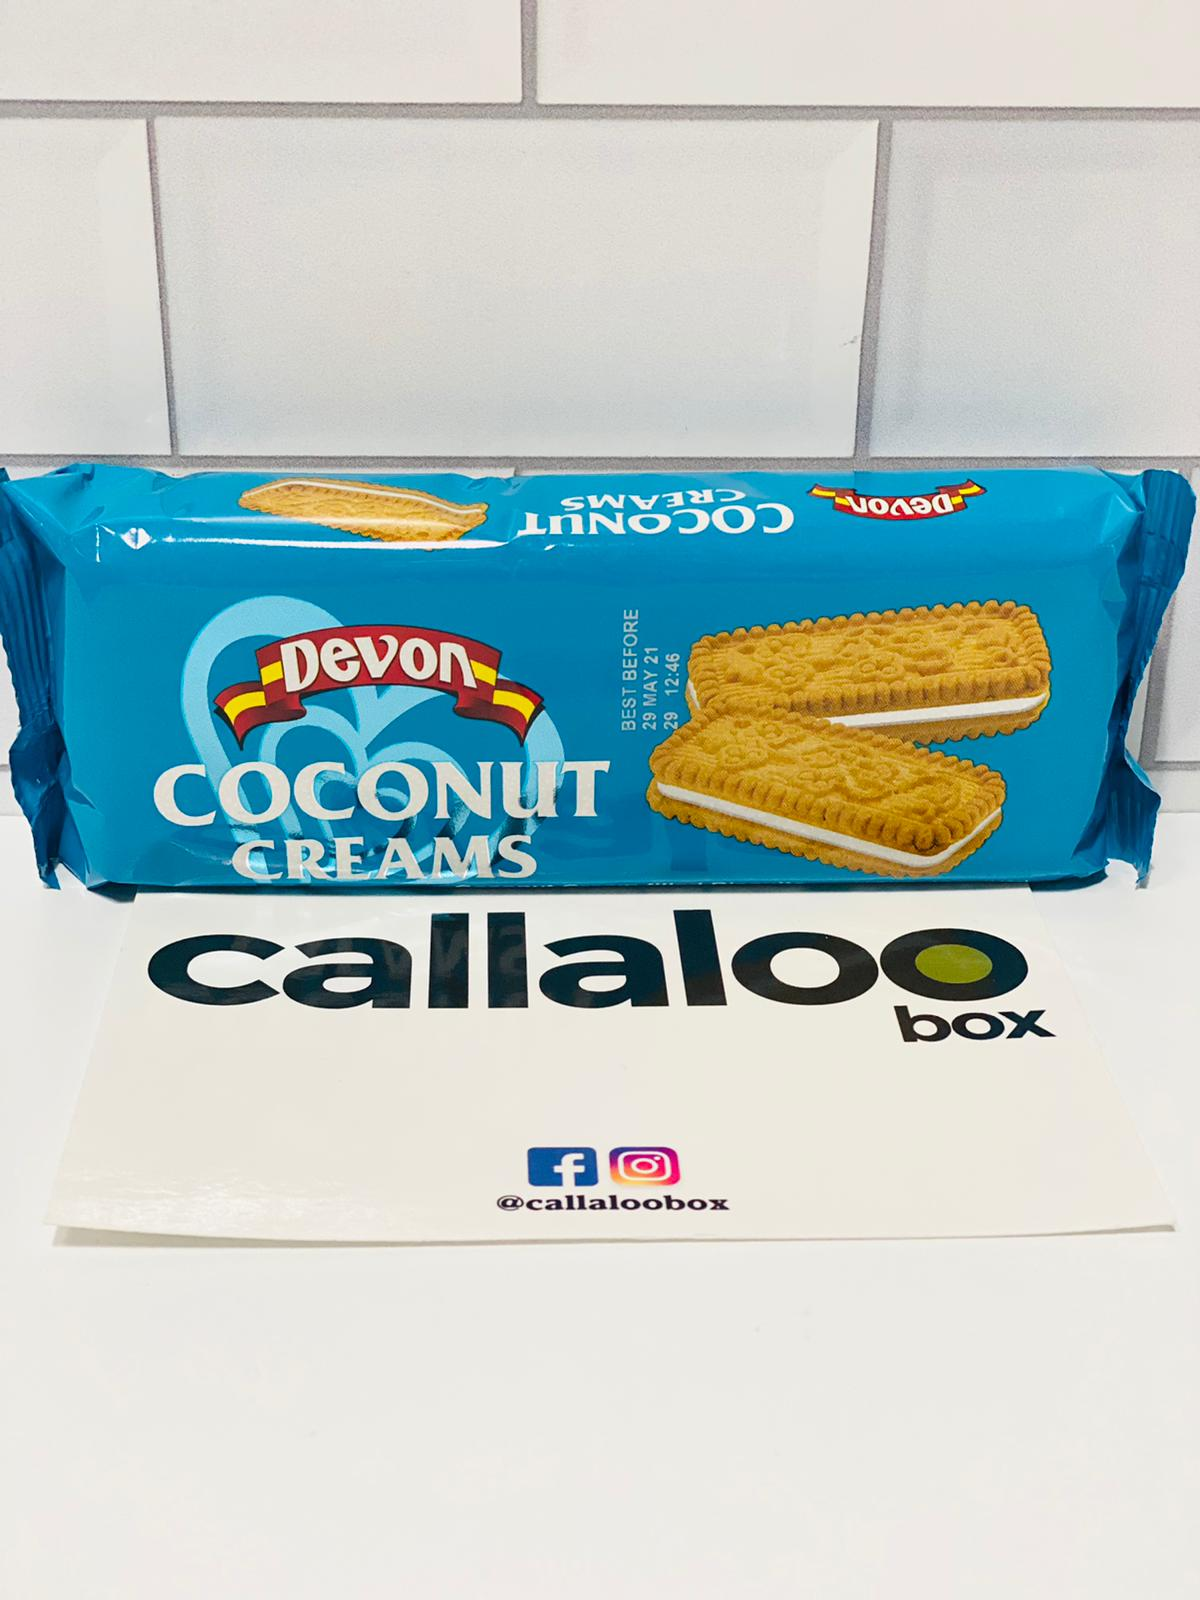 Callaloo Box Trinidad and Tobago Caribbean subscription box service Caribbean Online grocery_ Devon Custard Bourbon Coconut Creams_140 gCallaloo Box Trinidad and Tobago Caribbean subscription box service Caribbean Online grocery_ Devon Custard Bourbon Coconut Creams_140g